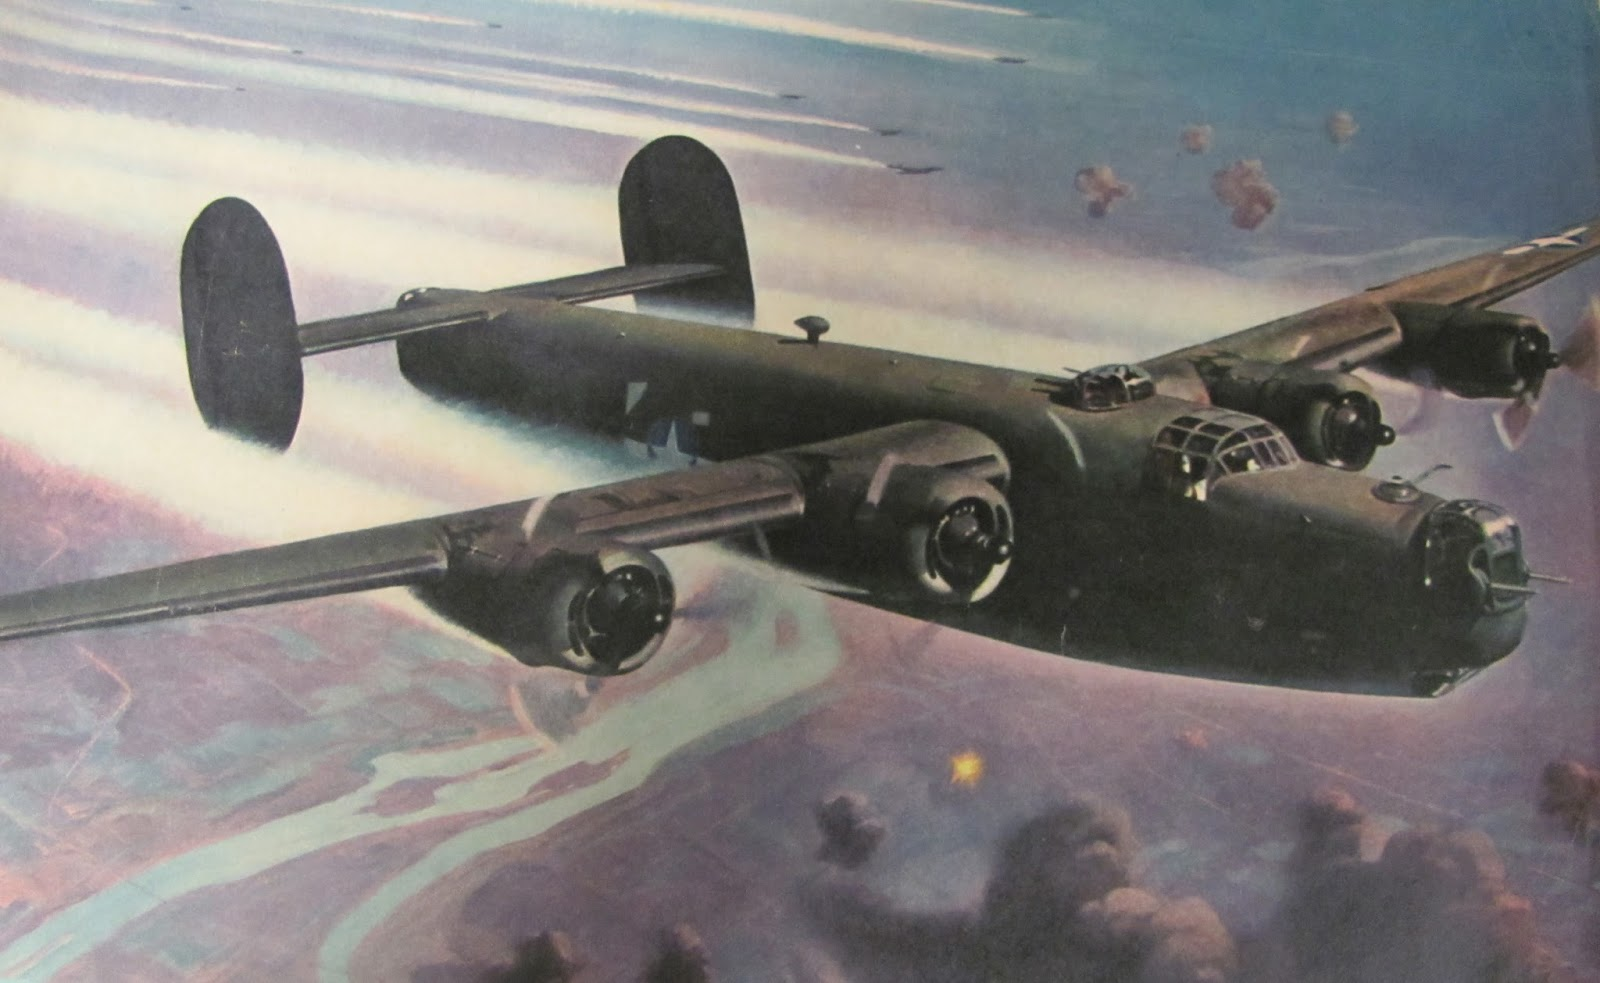 My Father in WWII: The Consolidated B-24 Liberator